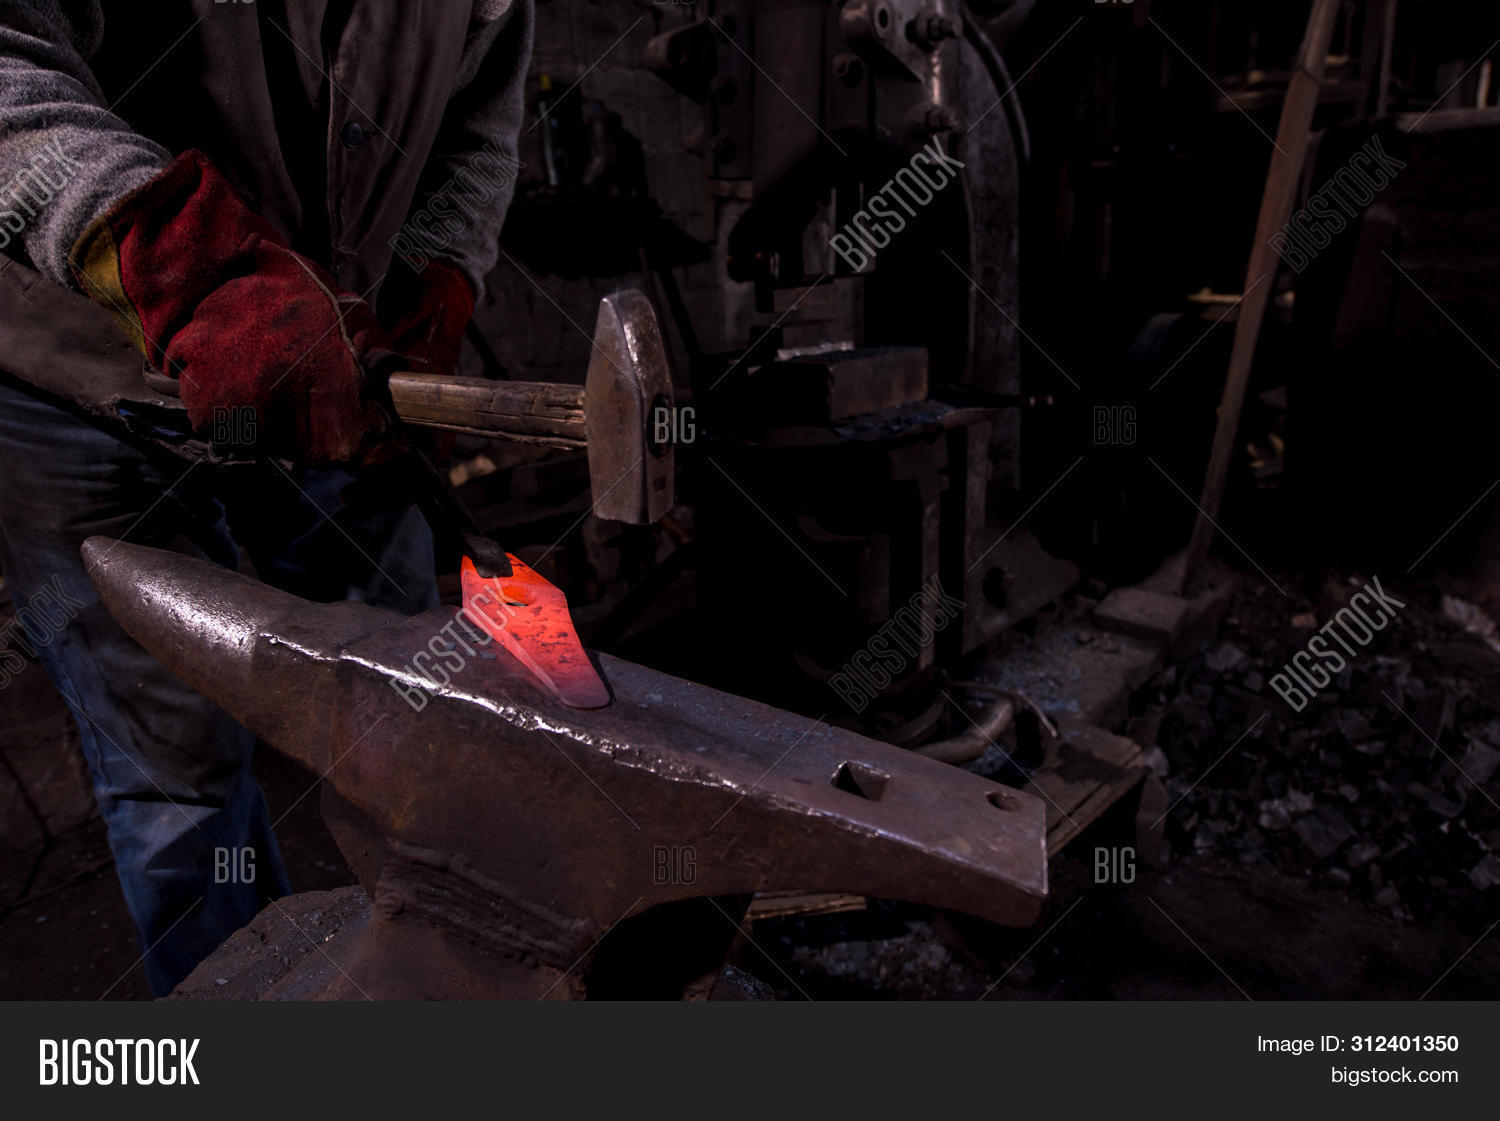 antique,anvil,blacksmith,blacksmithing,bright,craft,craftsman,craftsmanship,equipment,farrier,fire,fireworks,flame,forge,forging,glowing,hammer,hand,handmade,handwork,heat,heavy,hot,industrial,industry,iron,job,man,manual,manufacturing,metal,metalwork,molten,occupation,old,red,retro,shop,skill,smith,smithy,spark,steel,strike,tool,traditional,work,worker,workshop